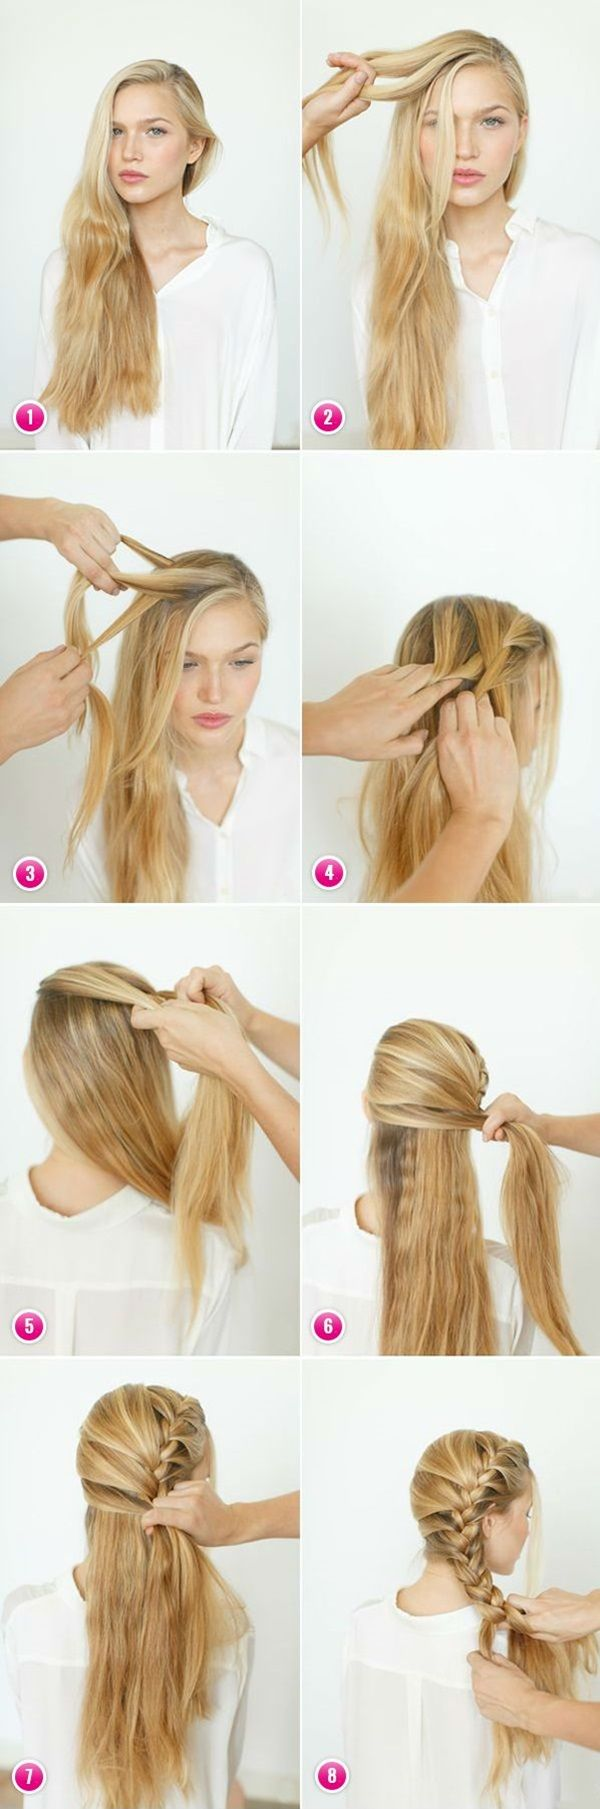 Quick Hairstyles For Long Hair 10 easy hairstyles for long hair make new look Best 25 Fast Hairstyles Ideas Only On Pinterest Fast Easy Hairstyles Simple School Hairstyles And Super Easy Hairstyles